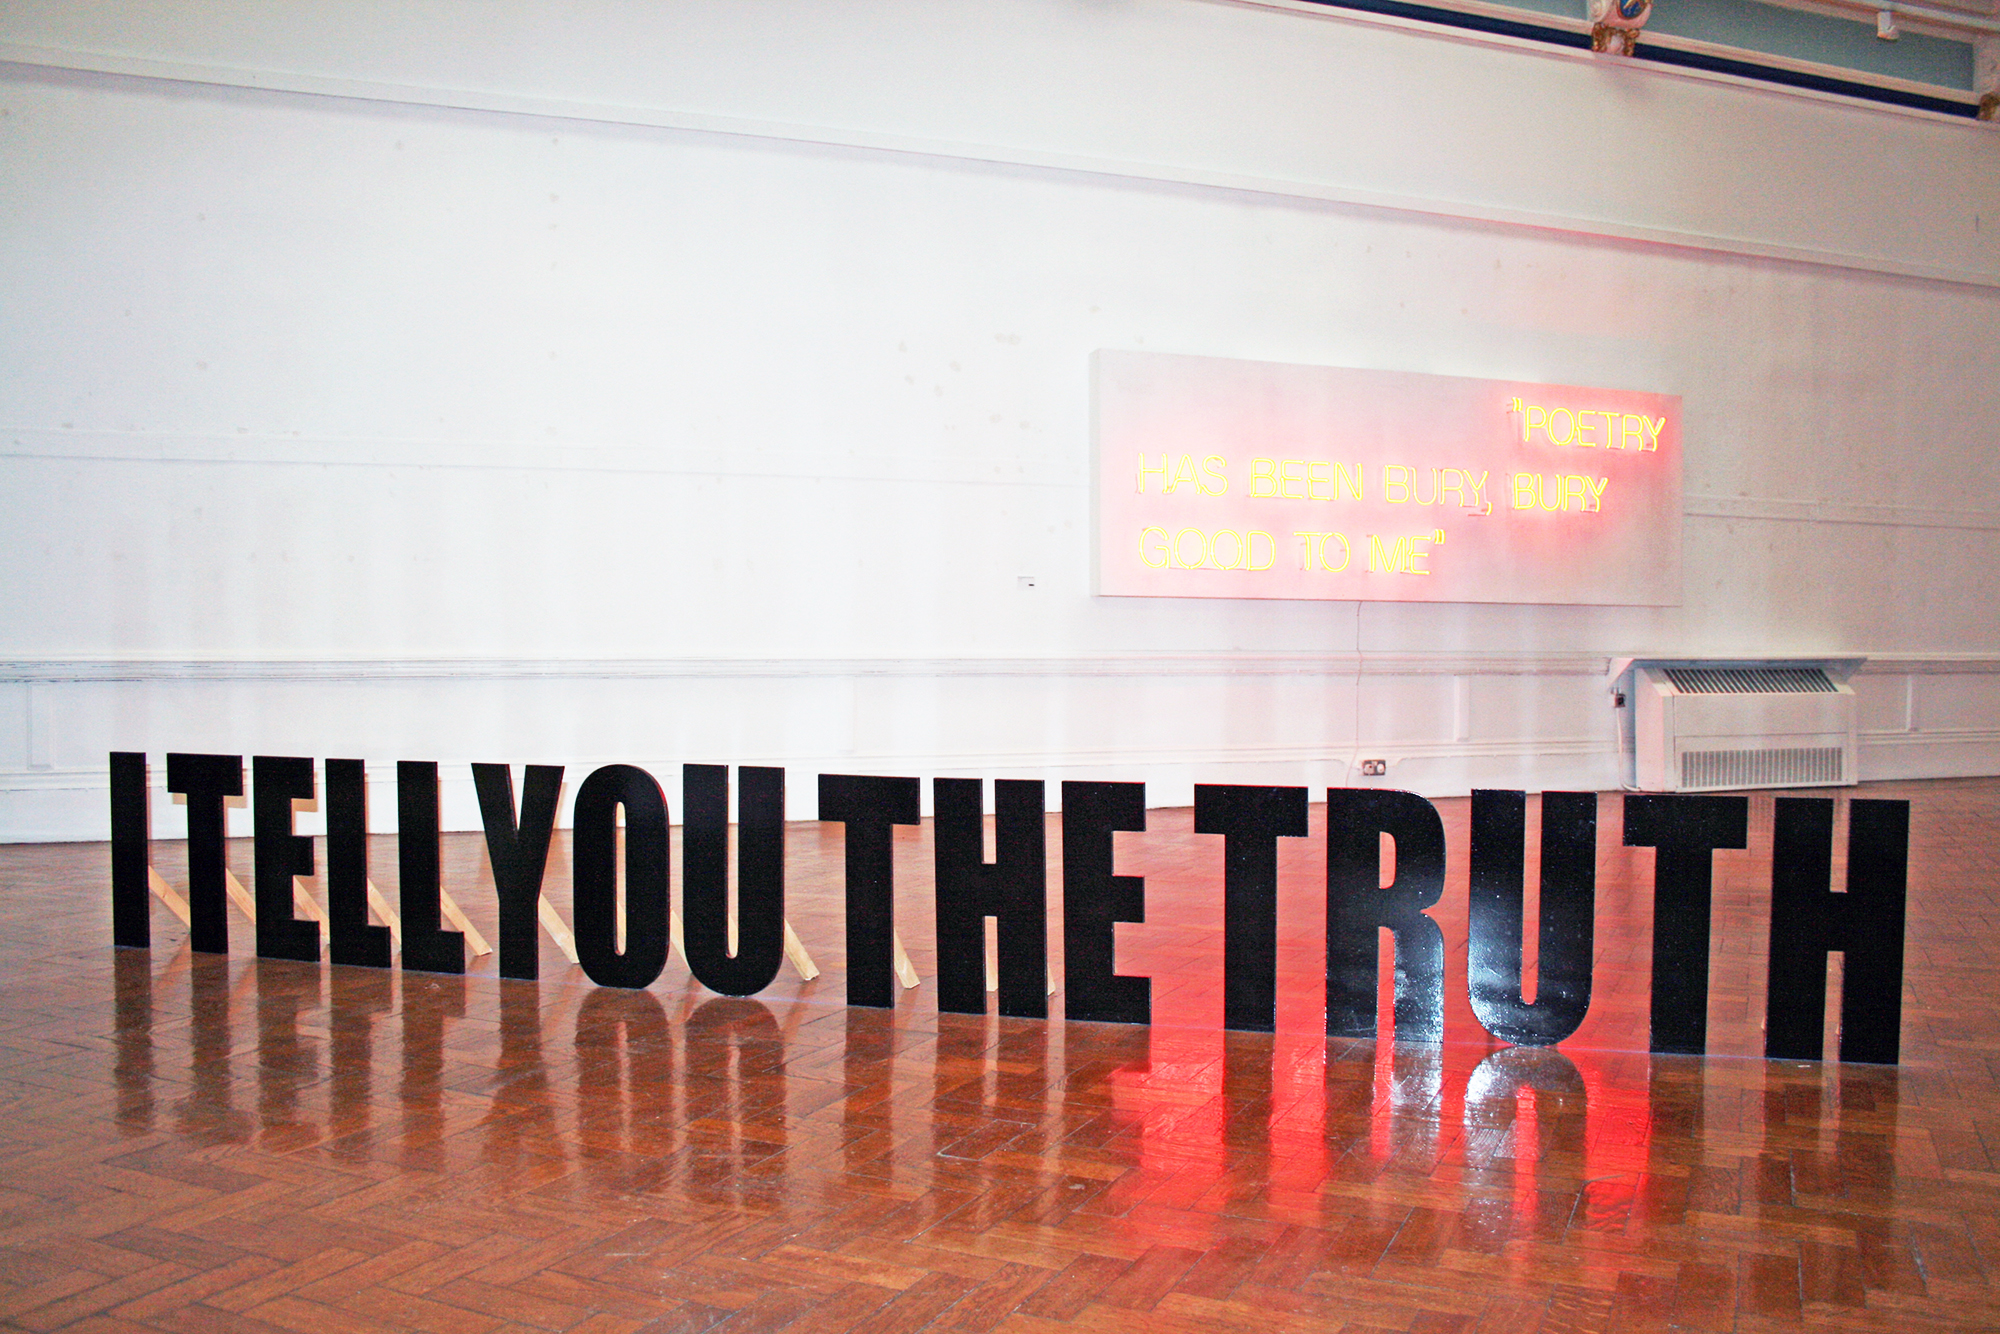 I TELL YOU THE TRUTH. Installation 2. Kate Pickering.